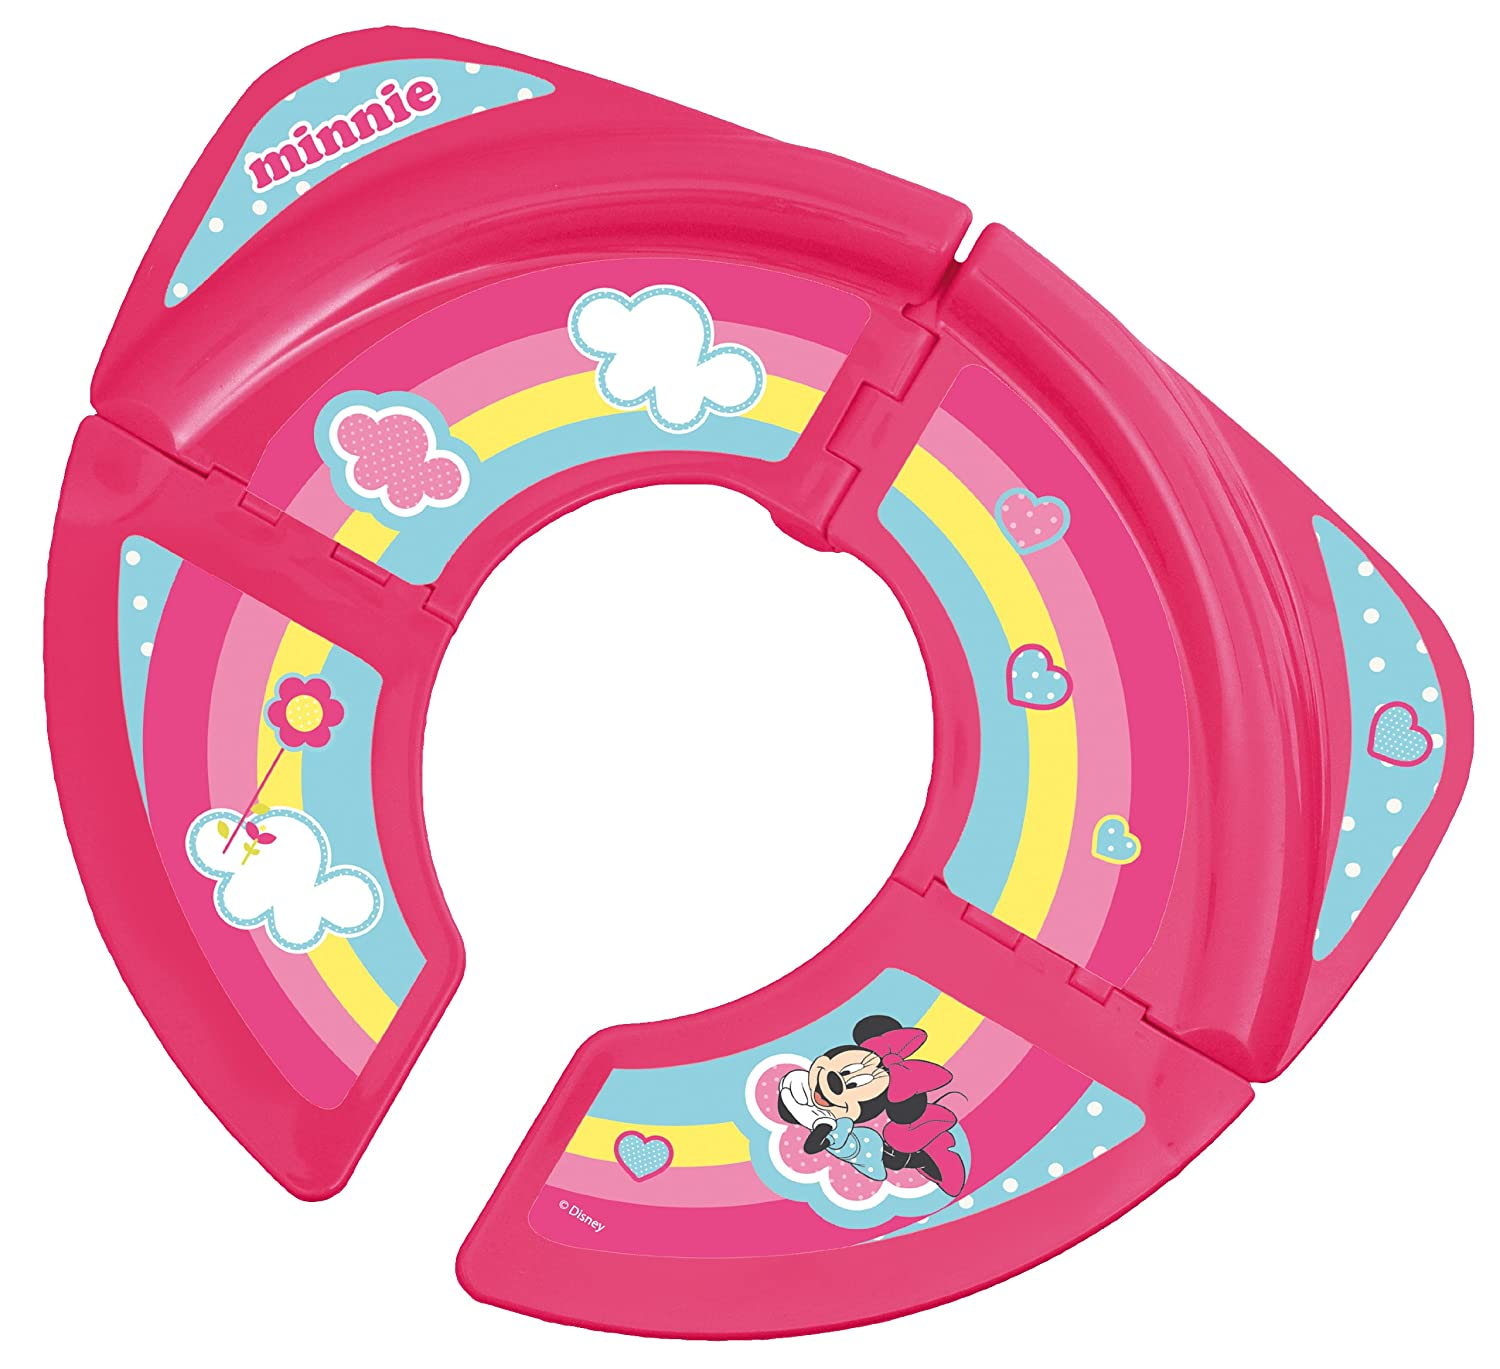 Solution Siege De Toilette Transportable Pliable Disney - Minnie Babyland 56317